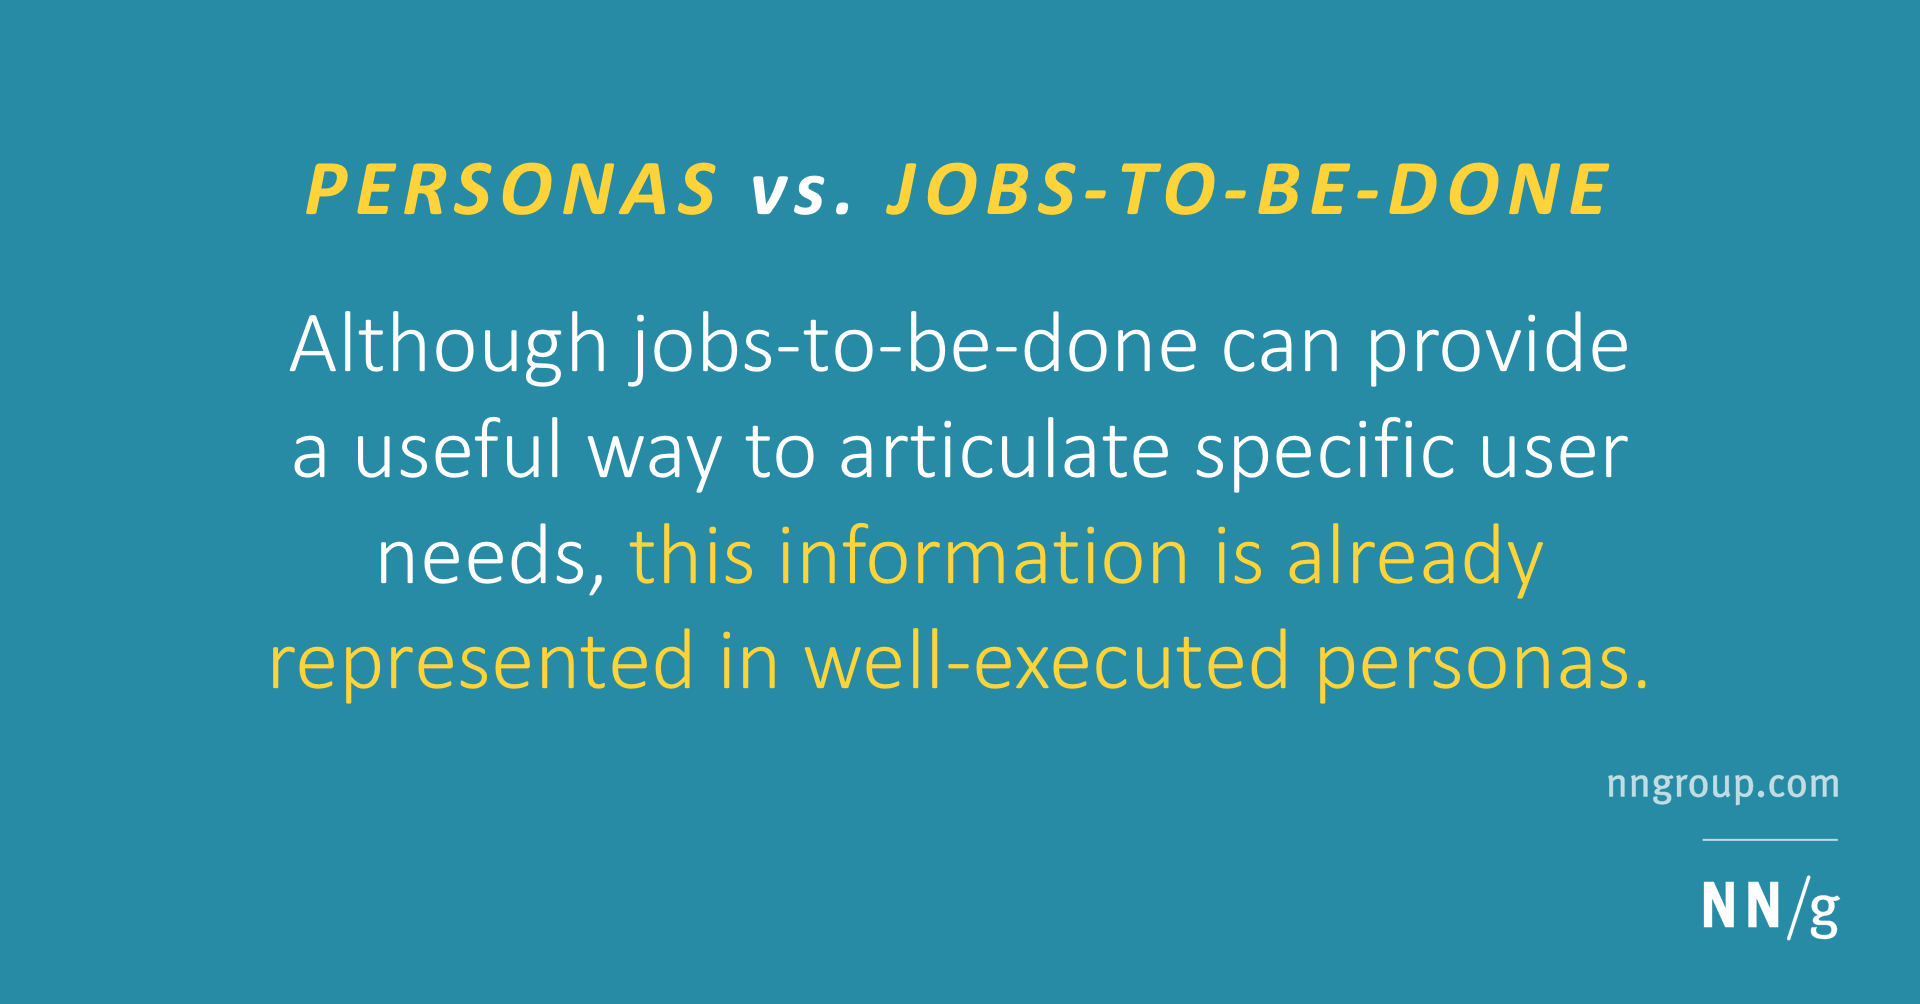 Personas vs. Jobs-to-Be-Done